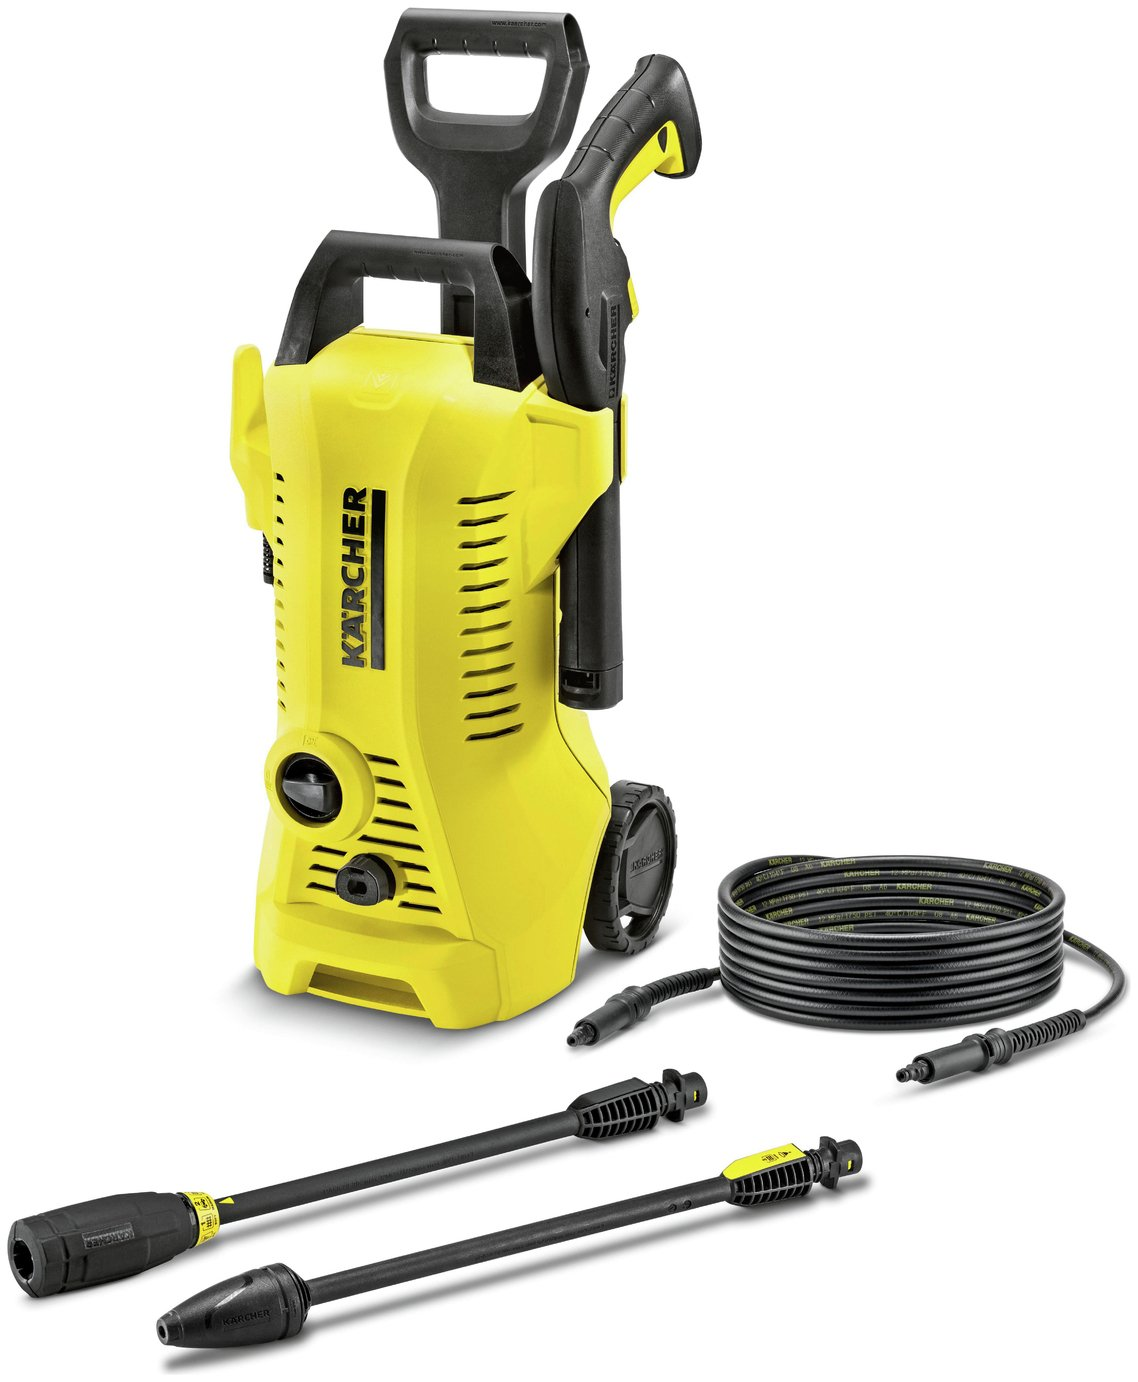 karcher k2 full control pressure washer at argos for. Black Bedroom Furniture Sets. Home Design Ideas